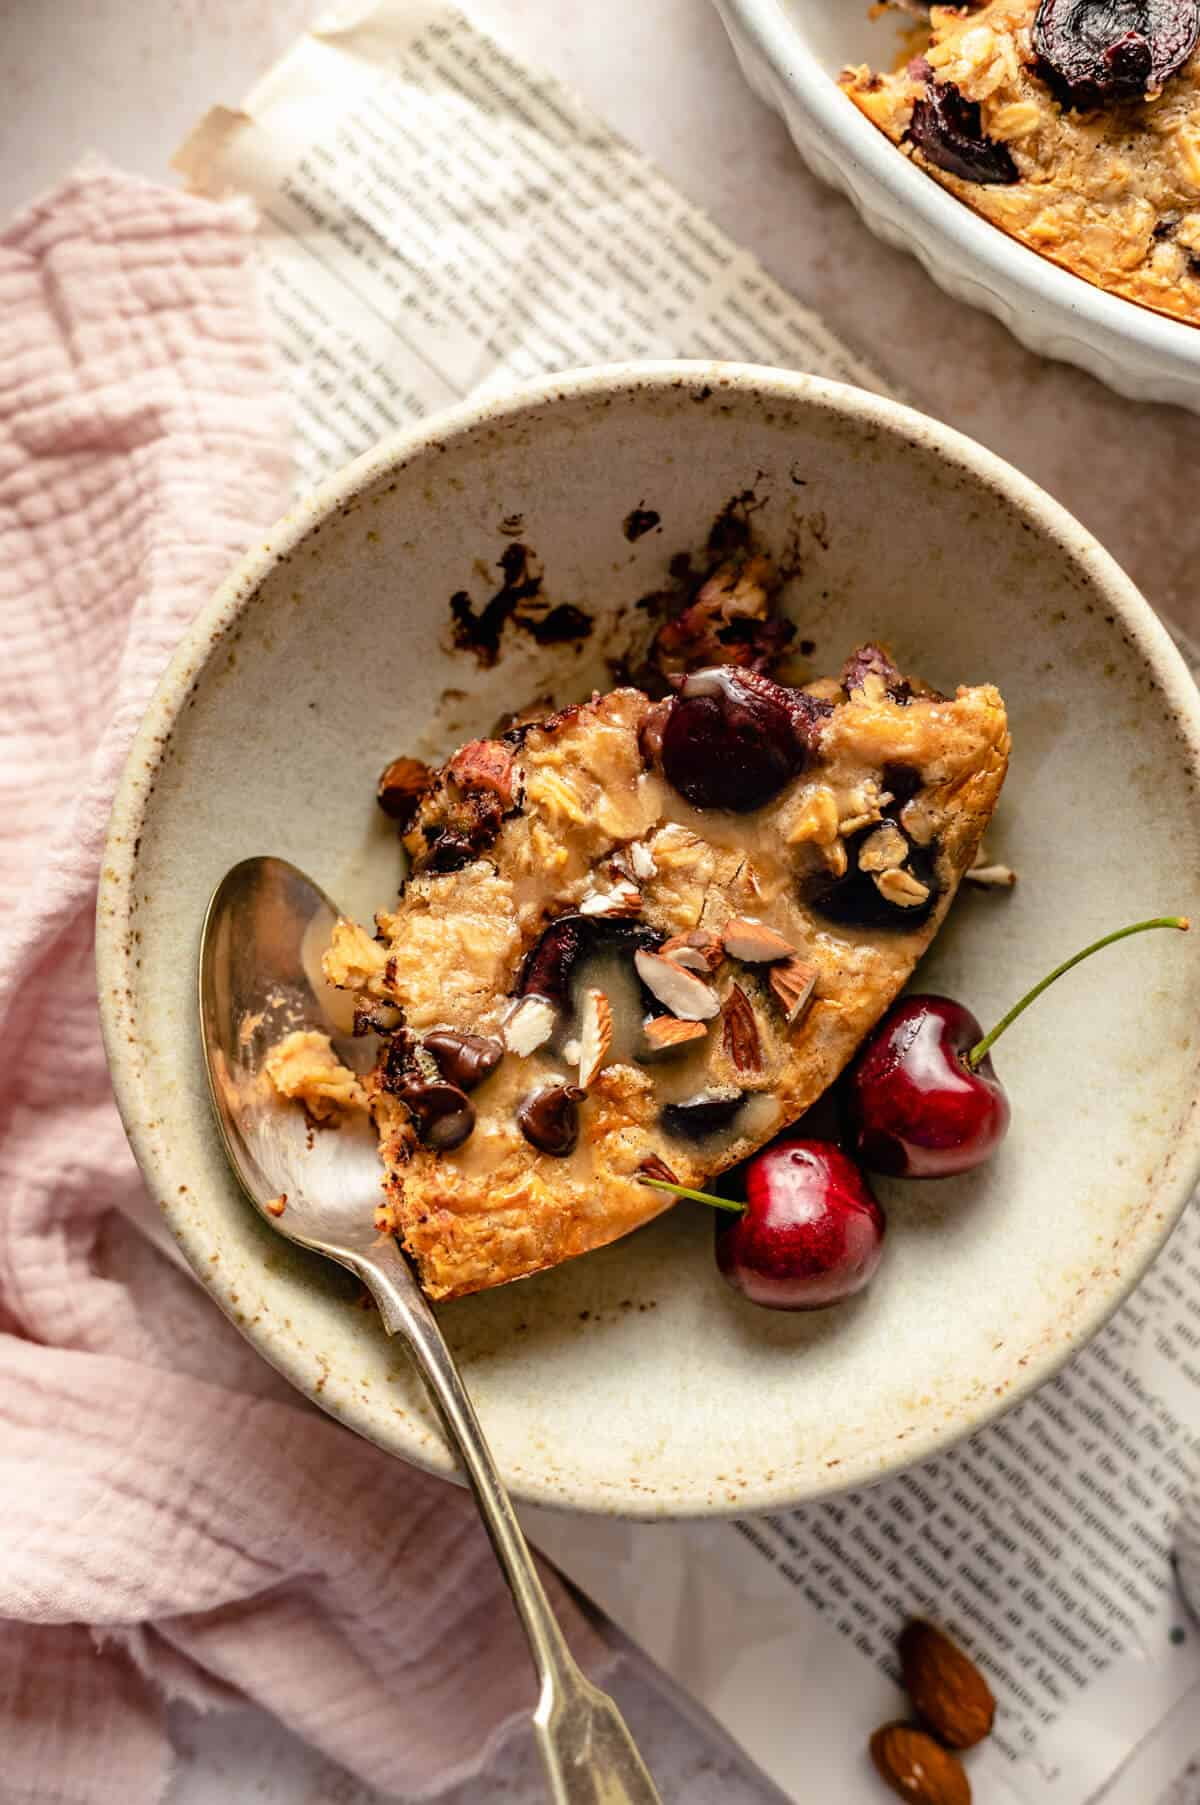 close up of the baked oatmeal in a bowl with a spoon, cherries and tahini drizzle on top.